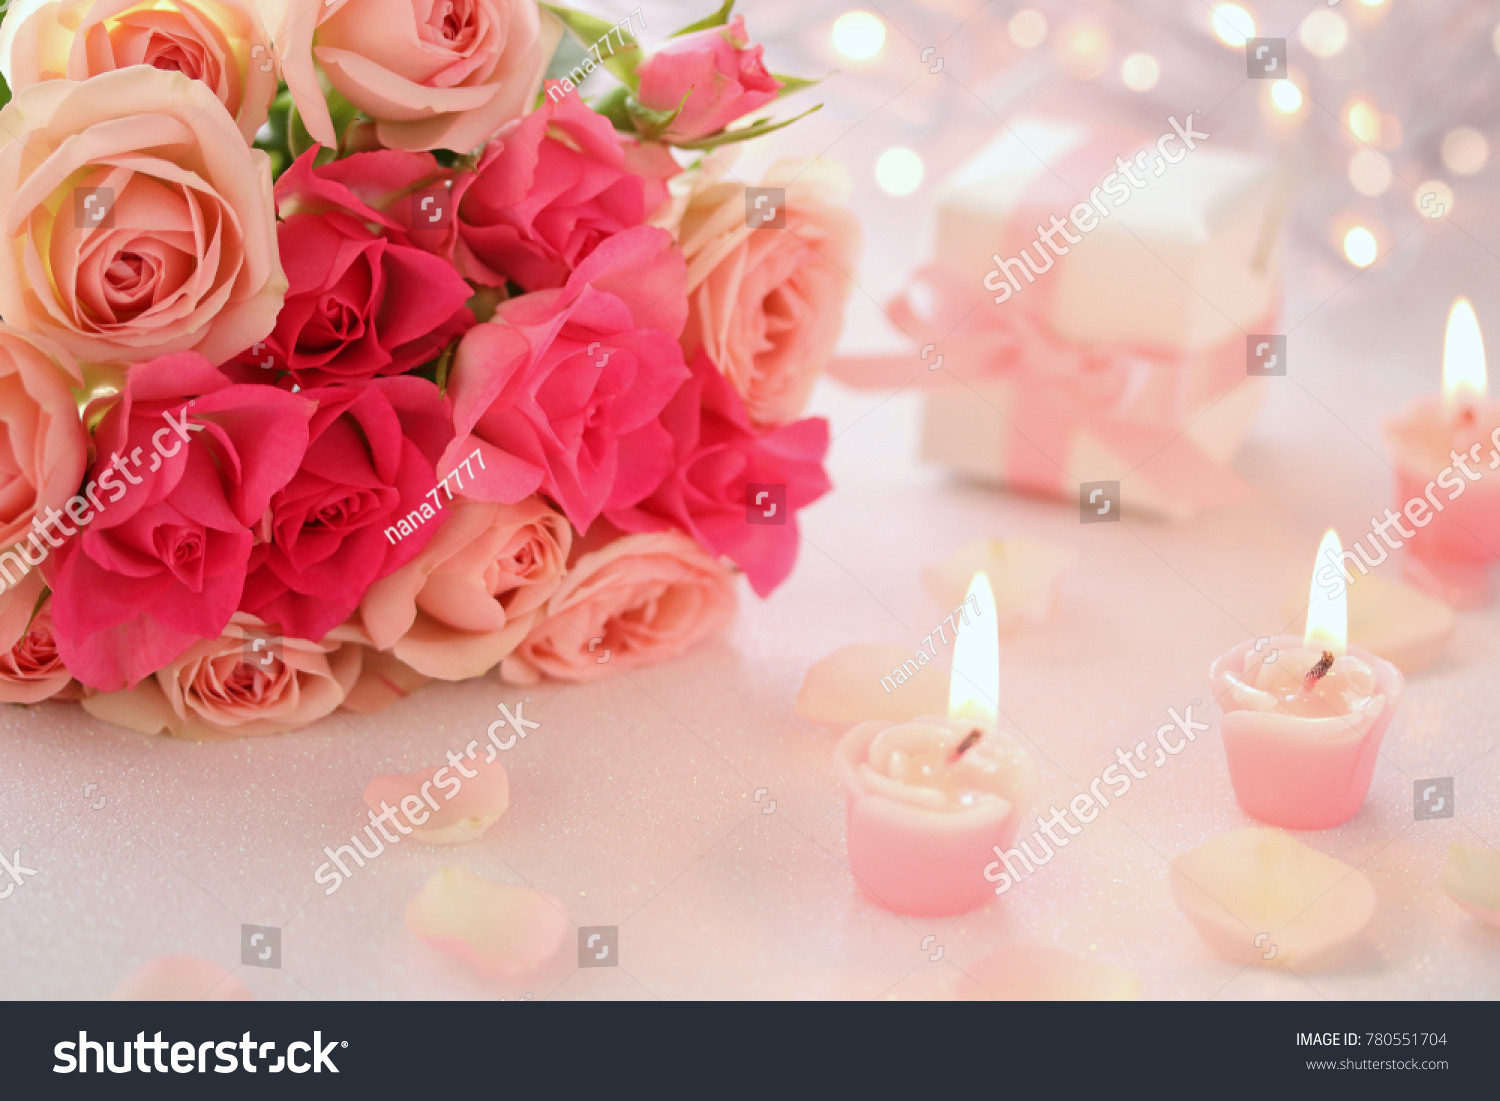 Valentines Roseshaped Candles With Bouquet Of Beautiful Pink Rose